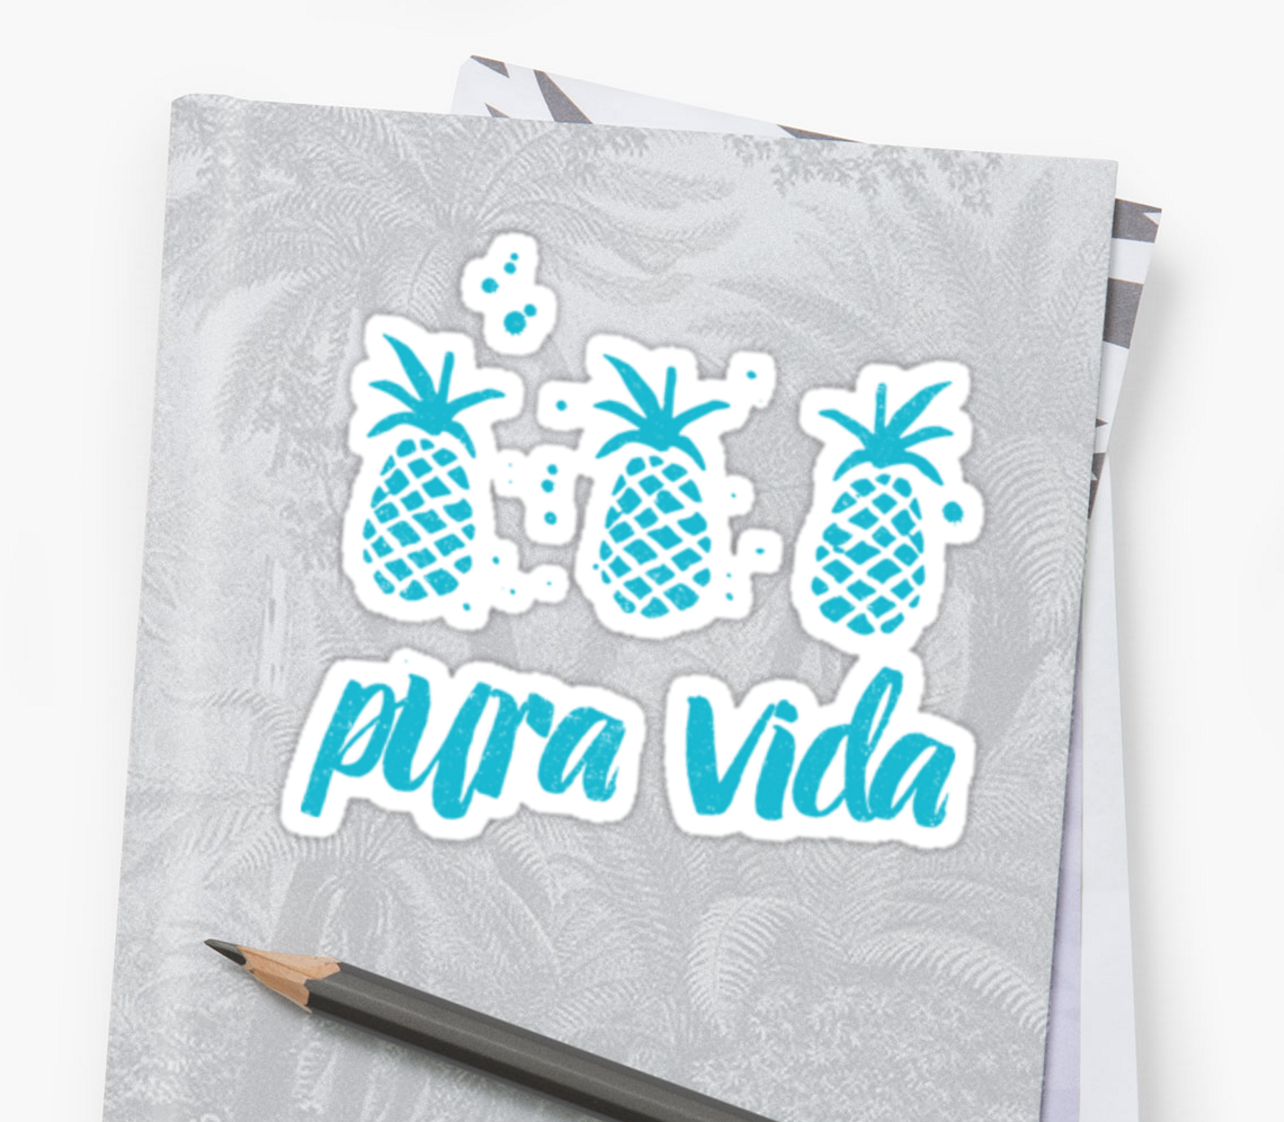 pura vida pineapples sticker on a notebook